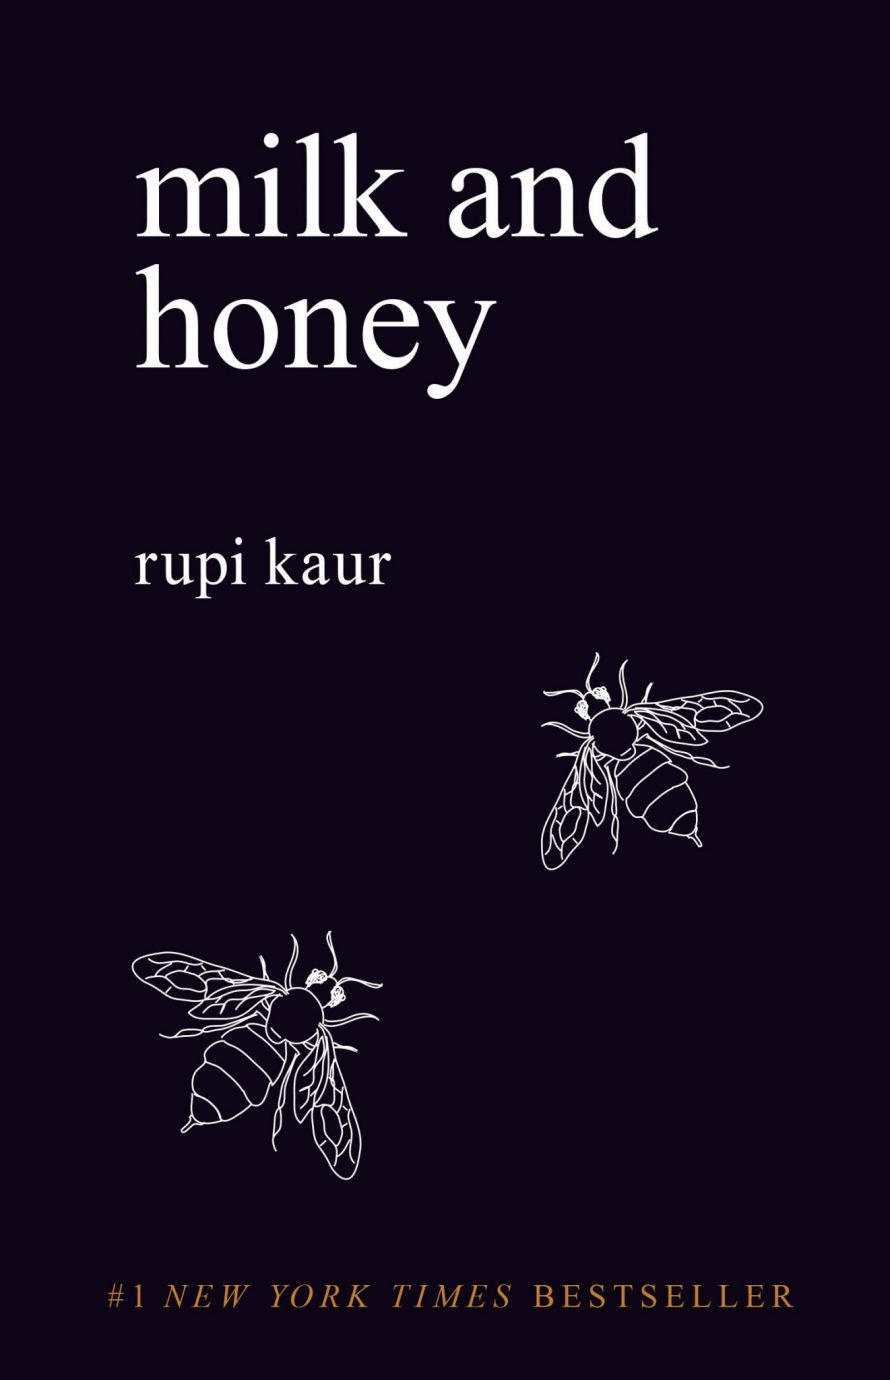 Six Books for Fans of Rupi Kaur